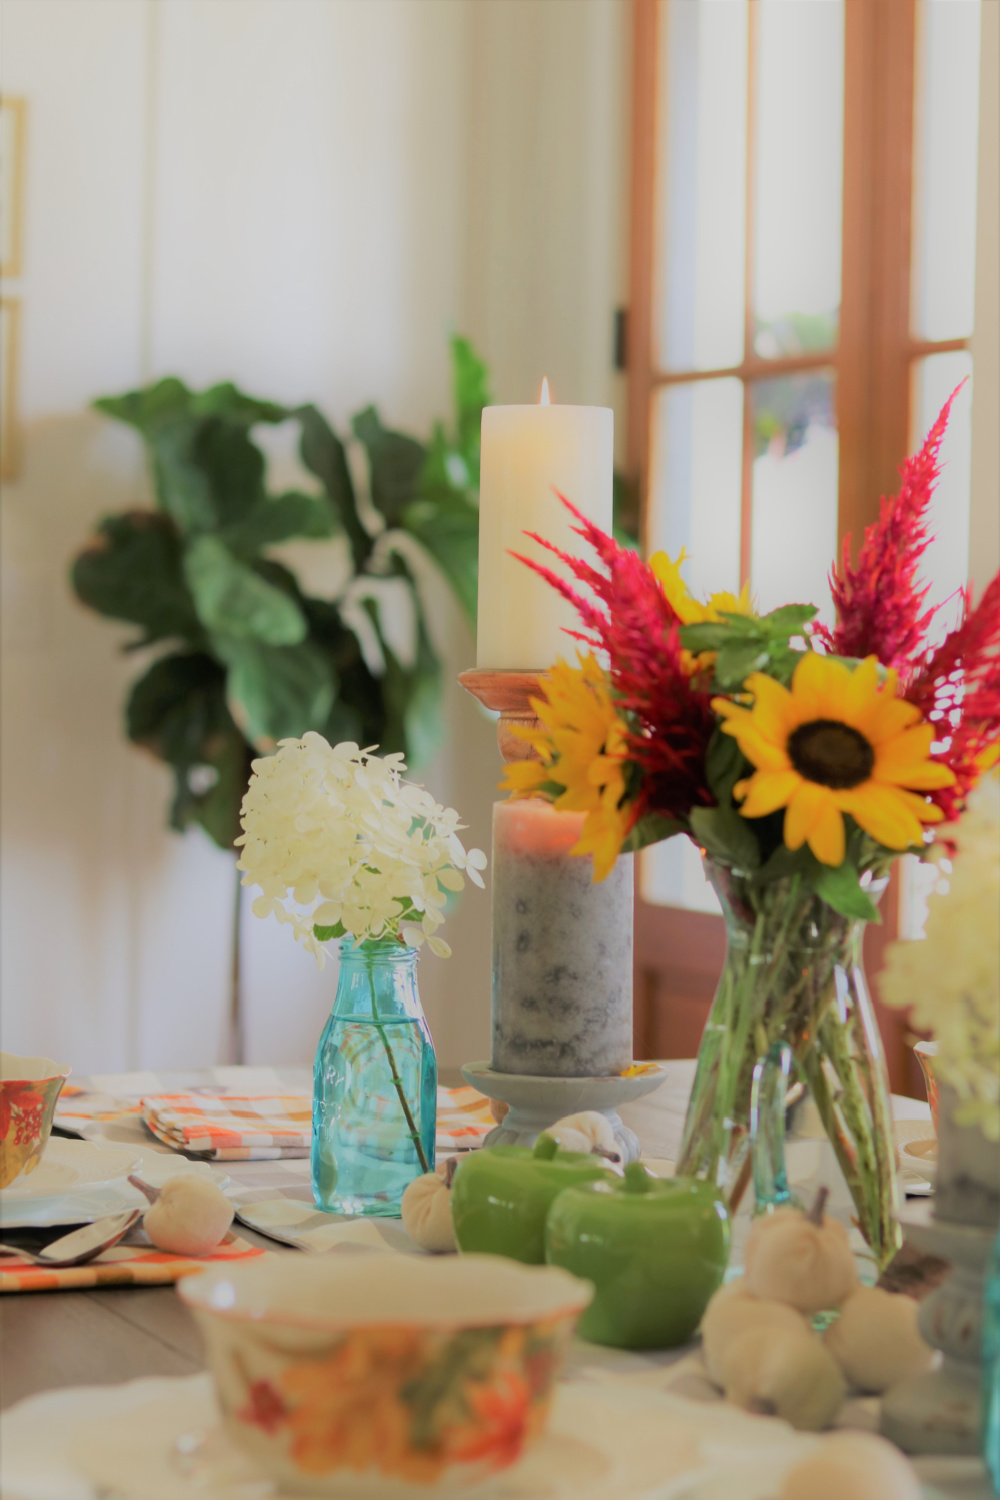 decorating-home-flowers-check-buffalo-vintage-bottles